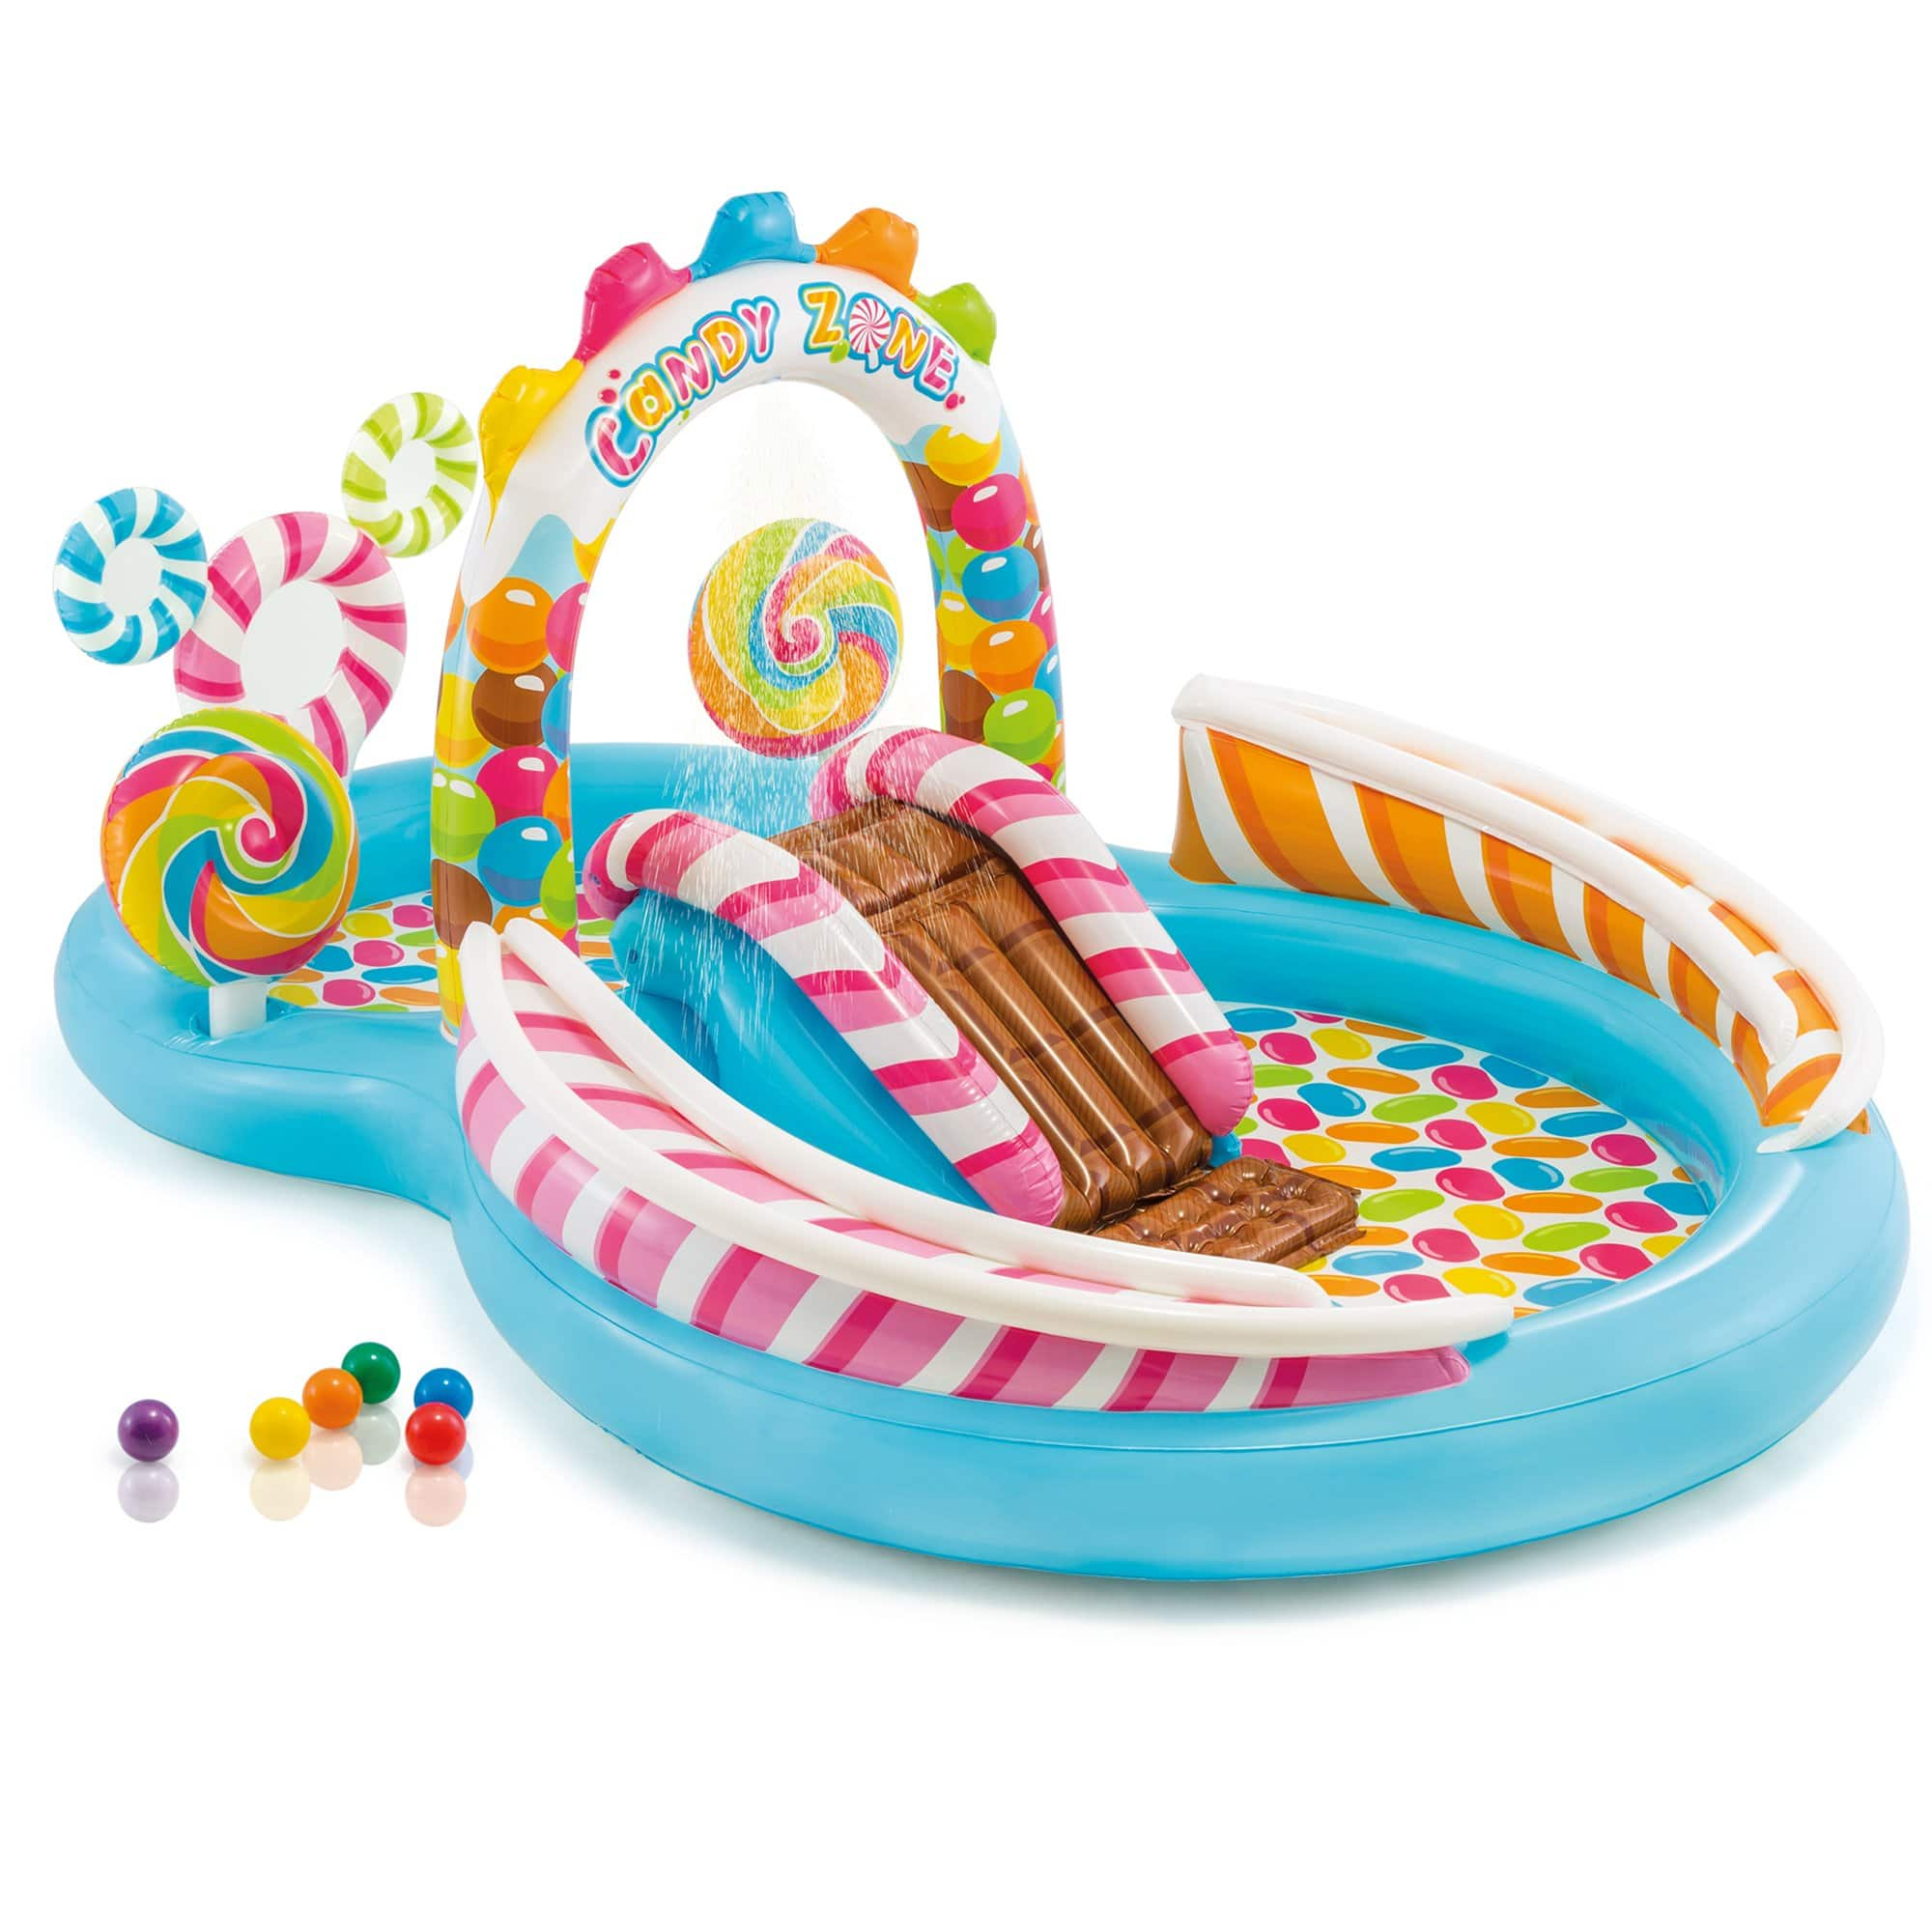 Intex Kids Inflatable Candy Zone Play Center Kids Slash Pool for $37.49 + FS